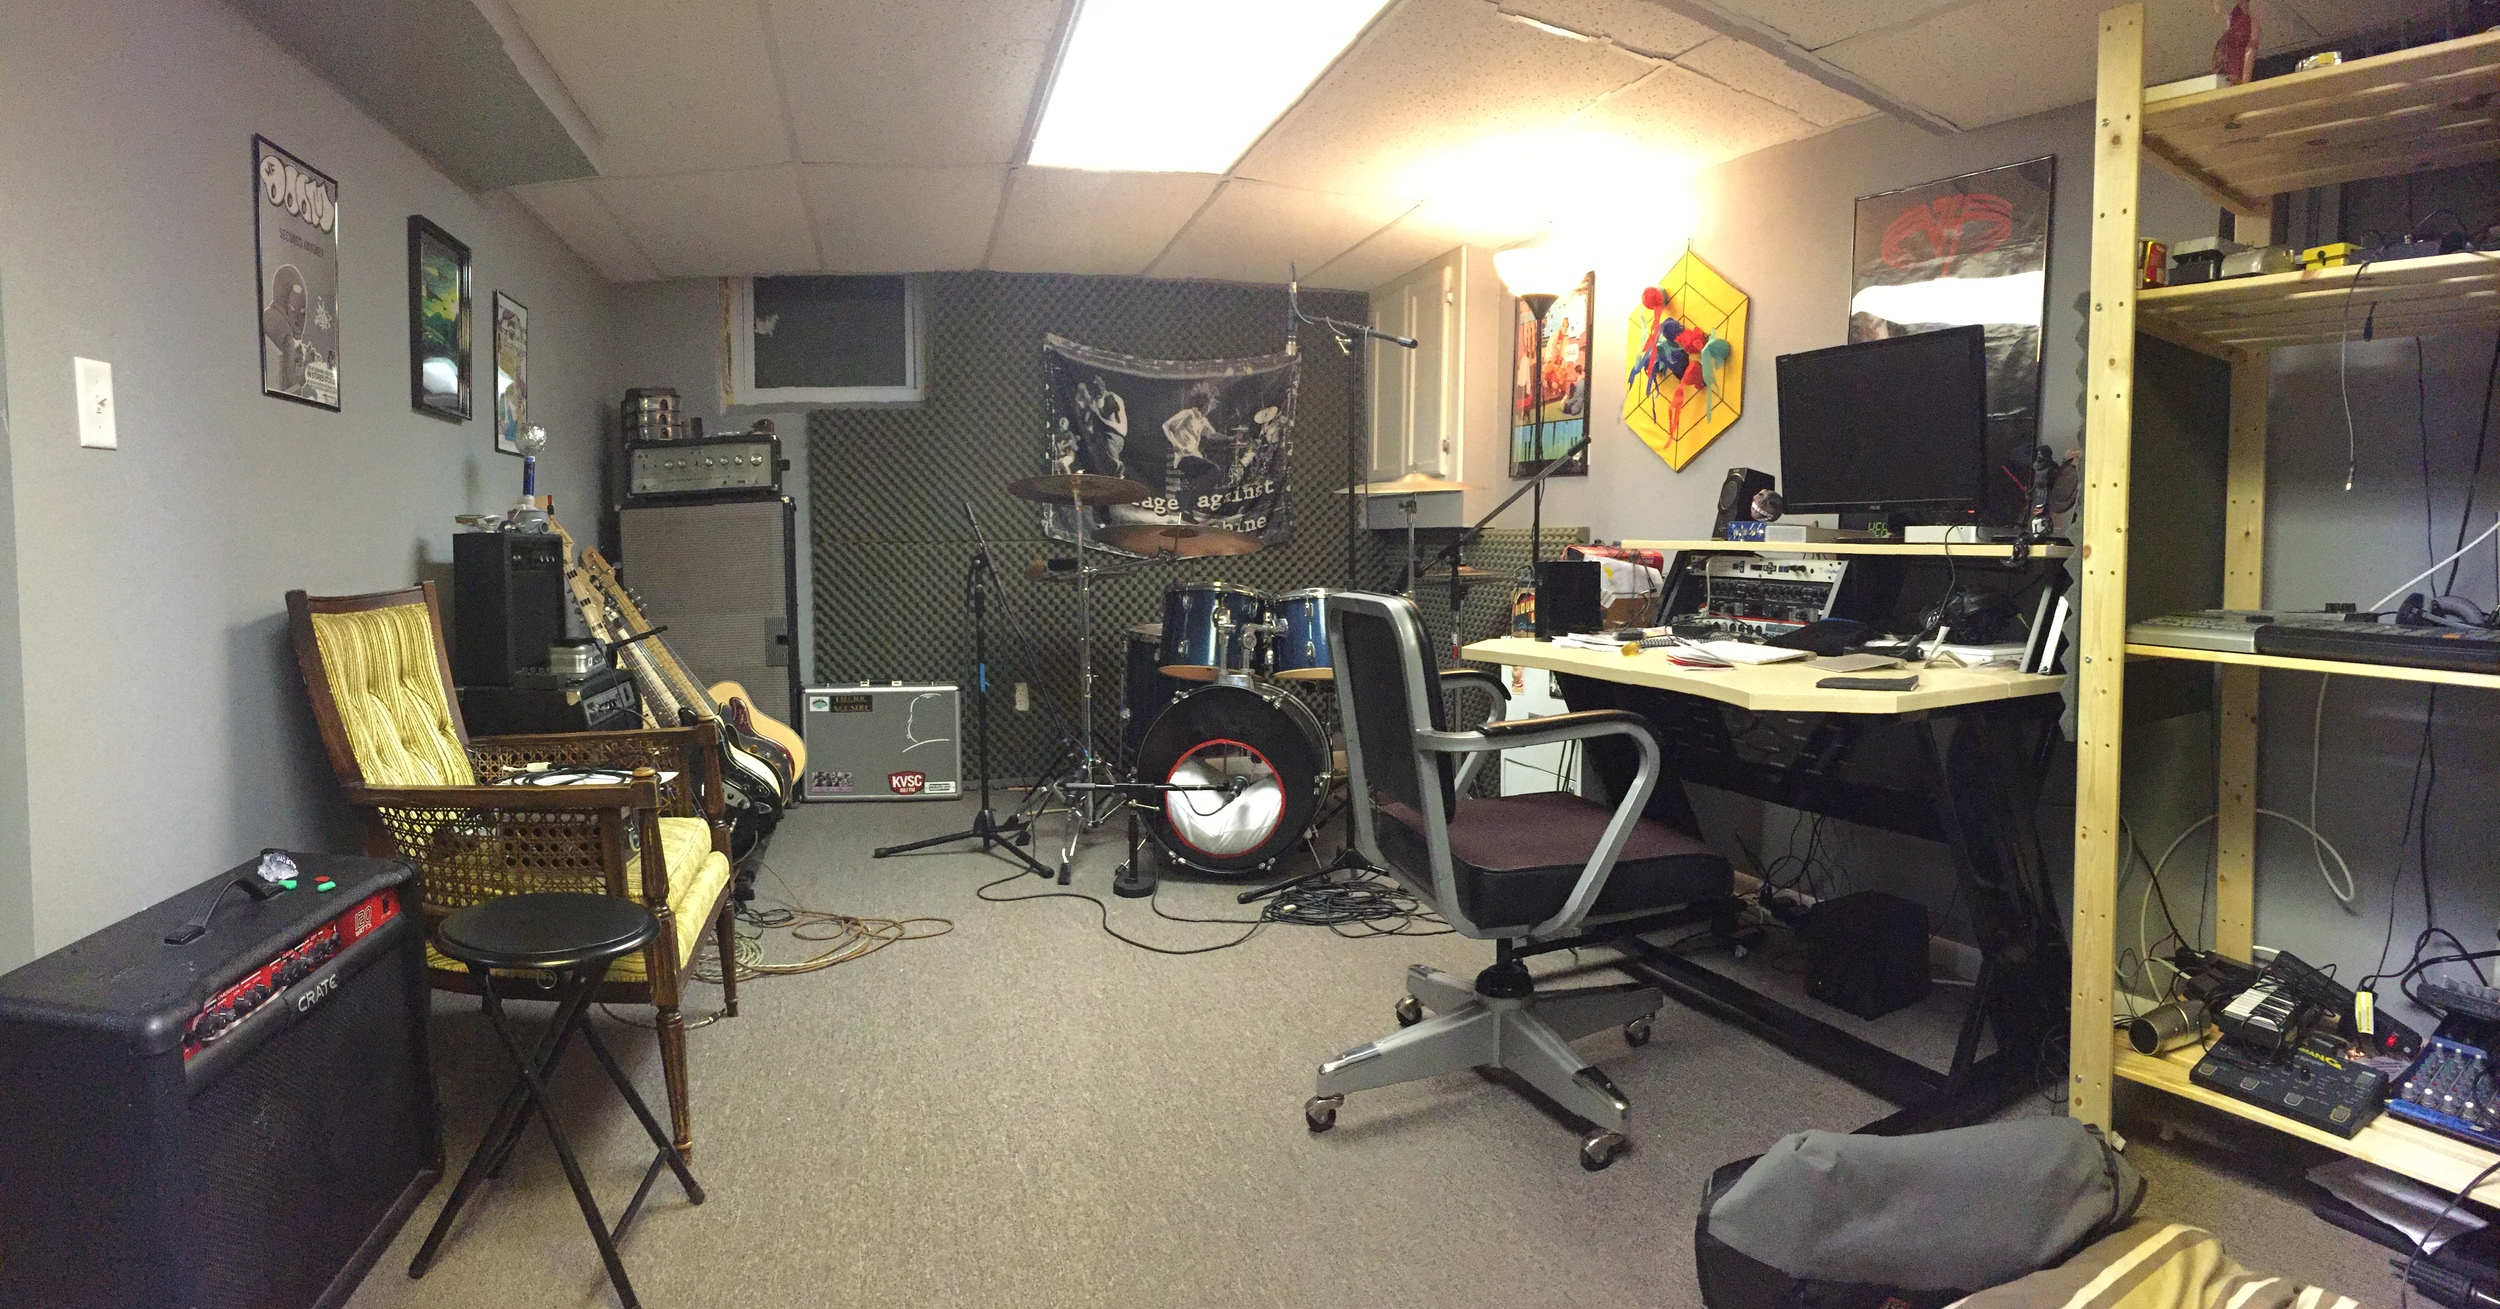 The gear has changed, but this was the view during the the recording process